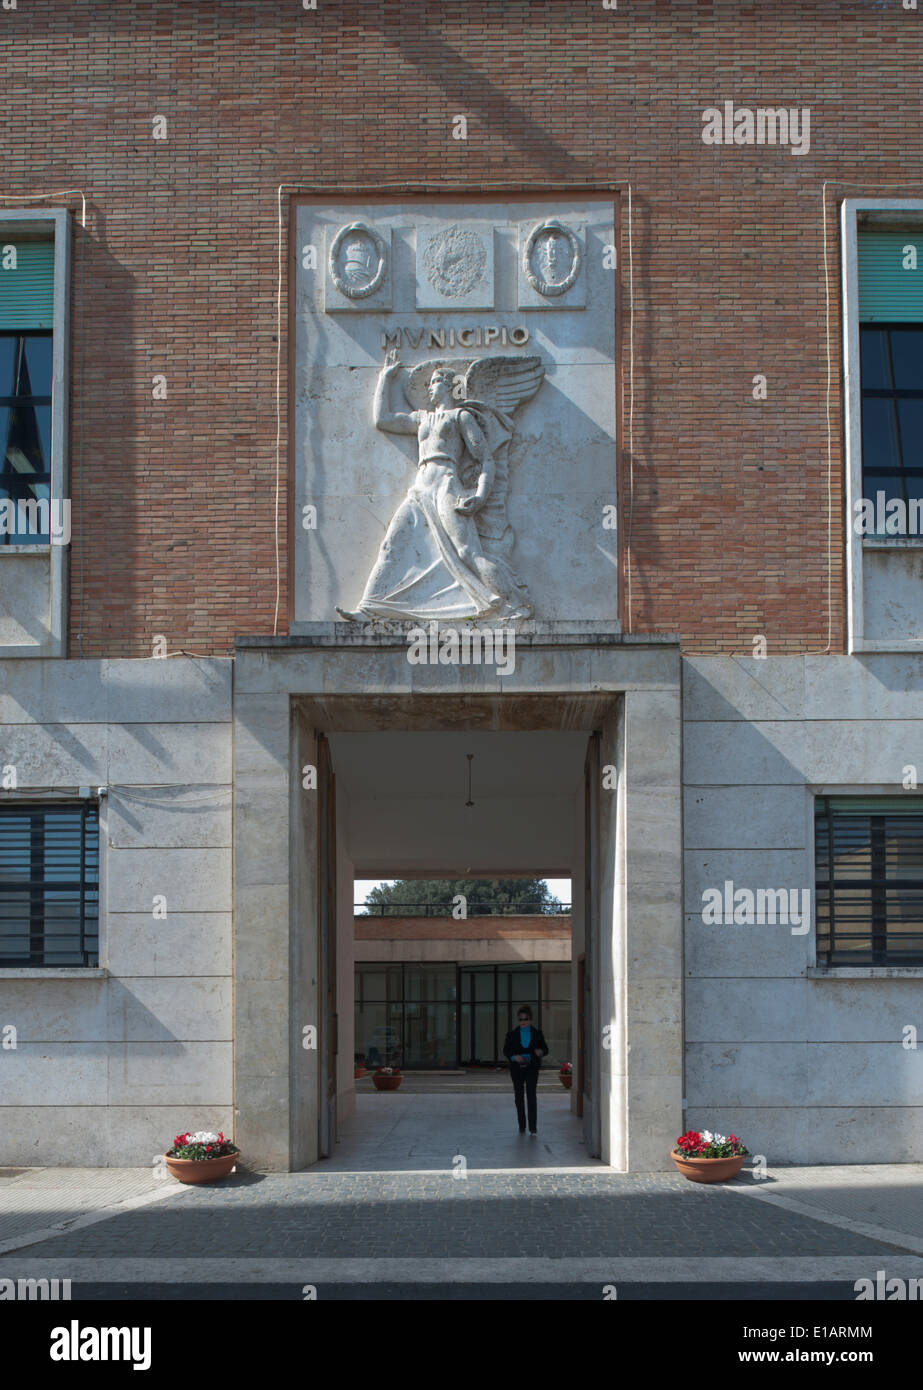 Town Hall, portal with a relief of the goddess of victory, Italian Rationalism, Sabaudia, Lazio, Italy - Stock Image